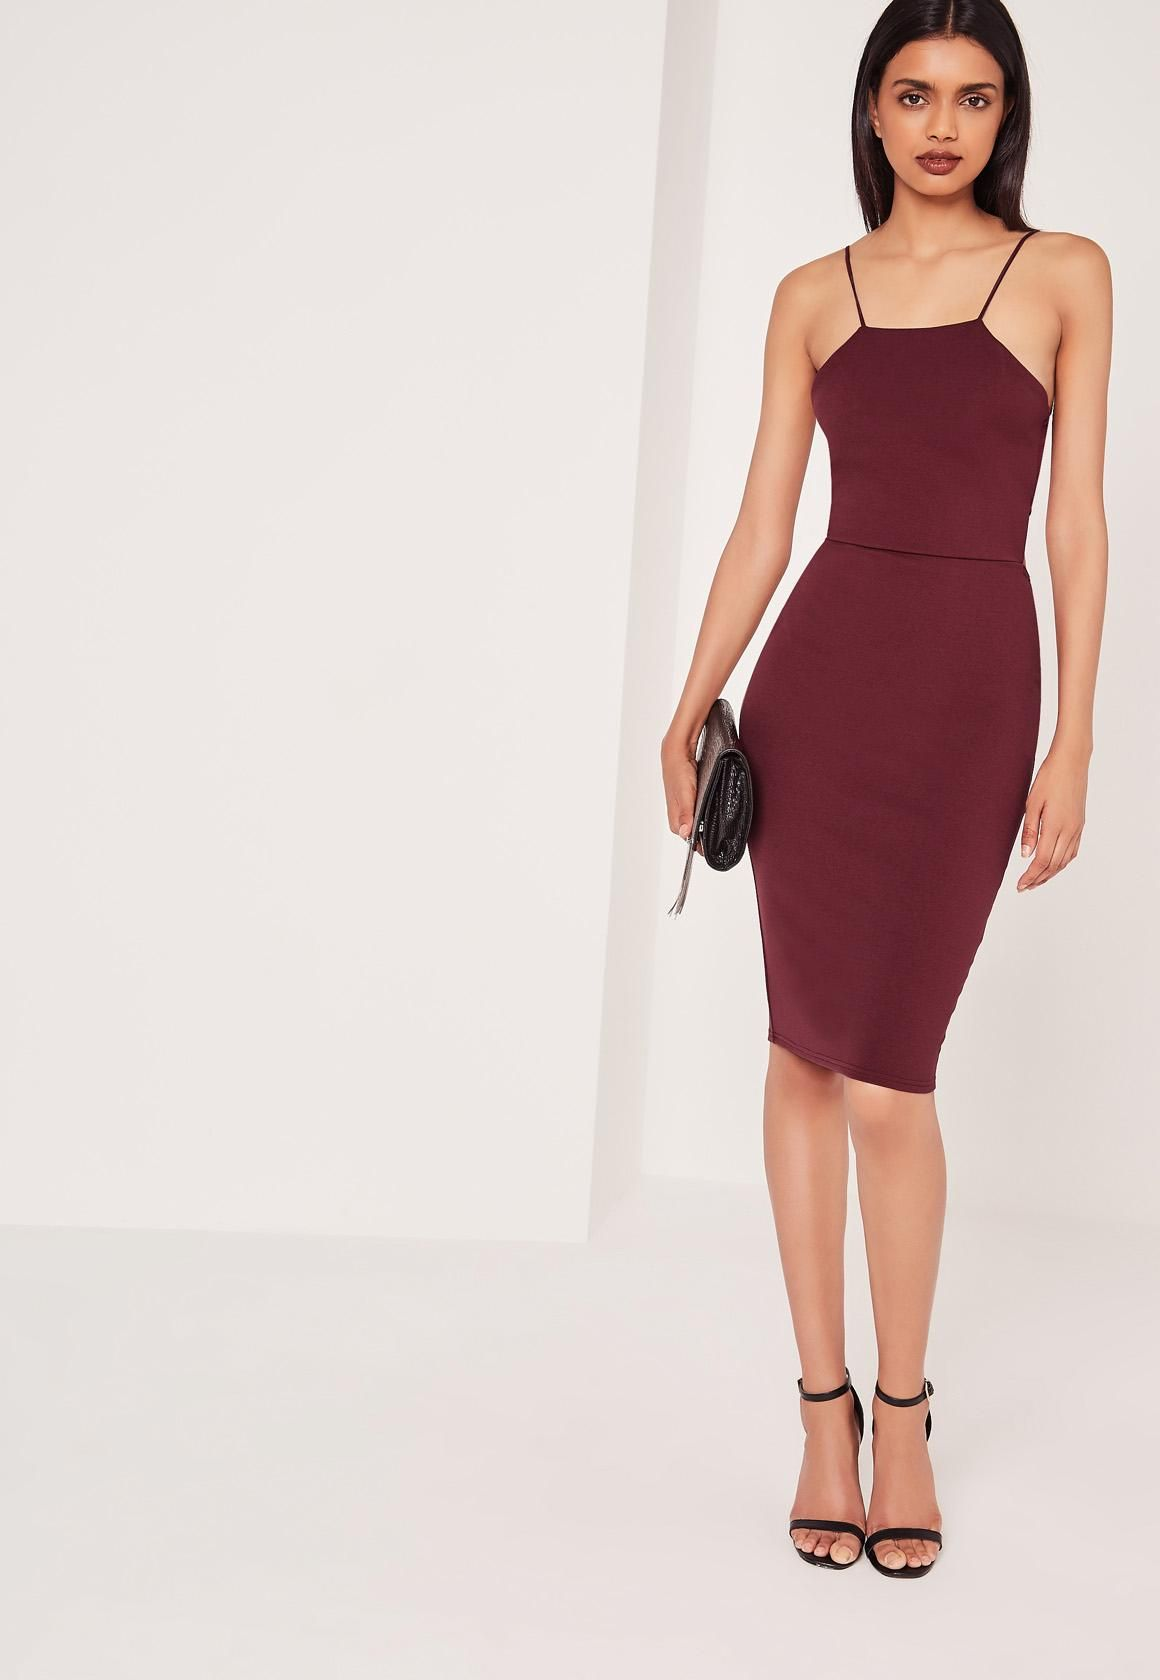 48564946 We all love a cheeky cut-out and this LBD (little burgundy dress) is a sure  fire way to slay this weekend. Featuring a sophisticated midi length, ...